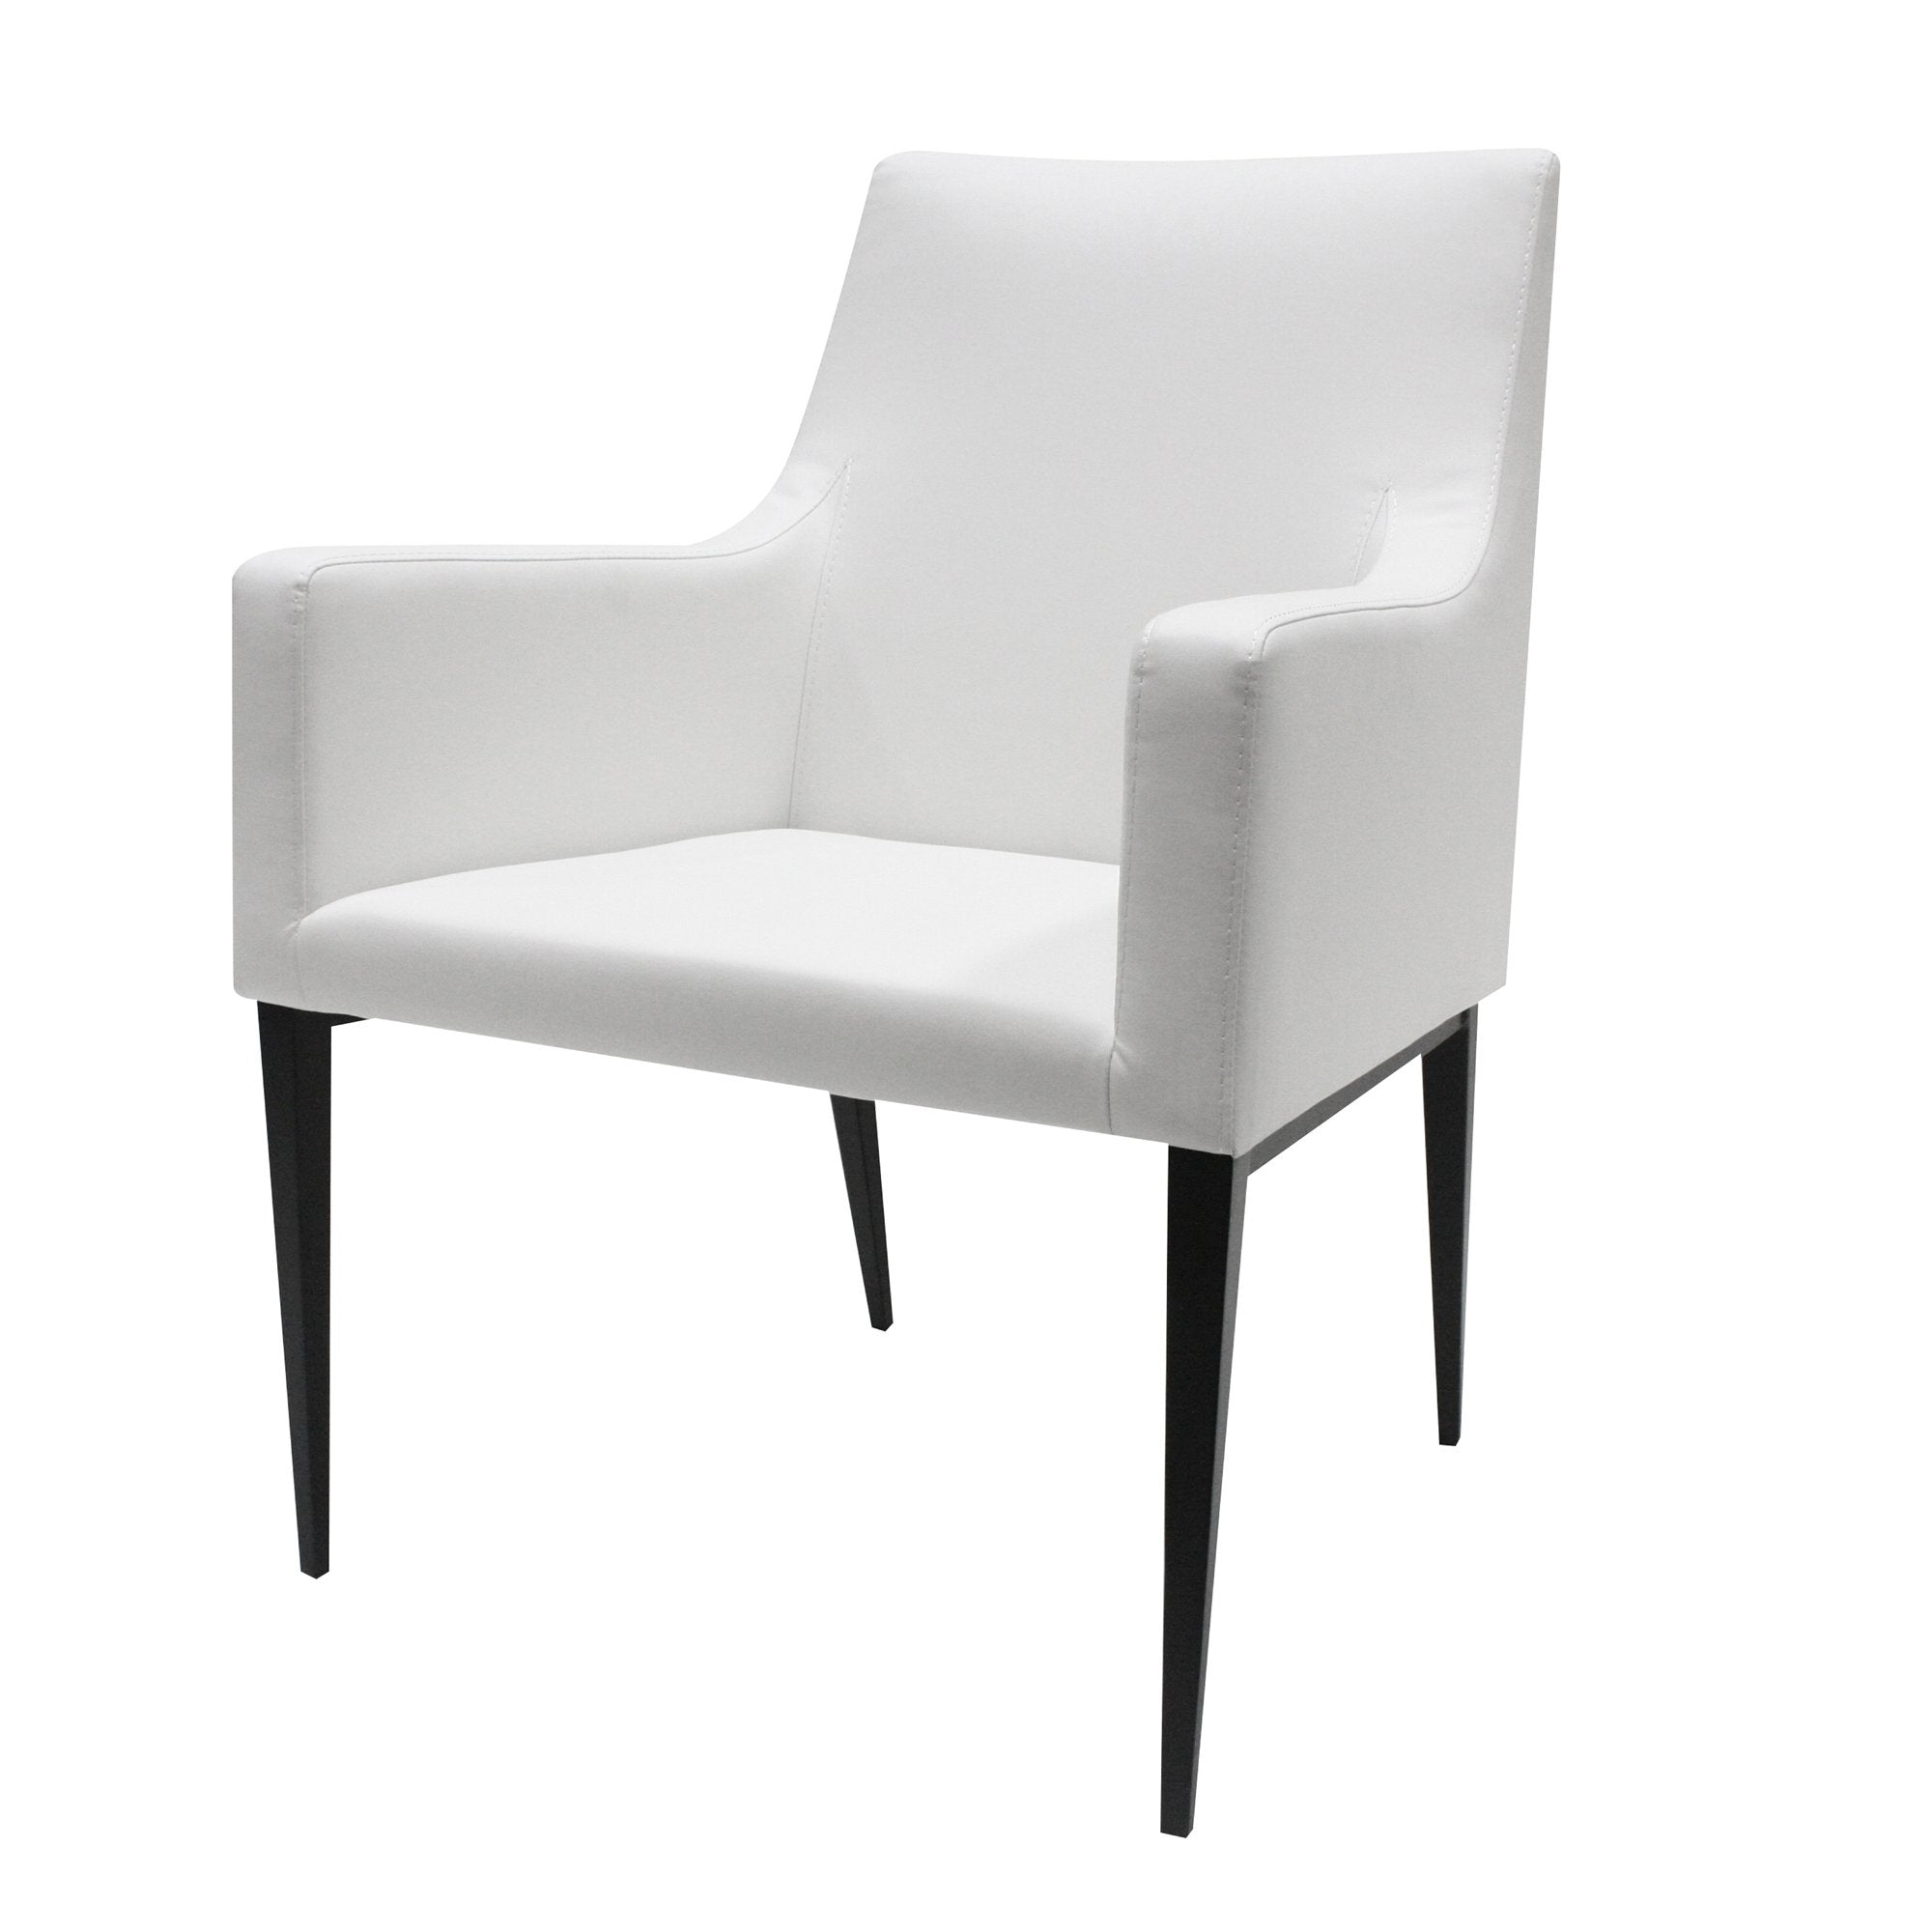 Lauren Dining Chair in Ivory White